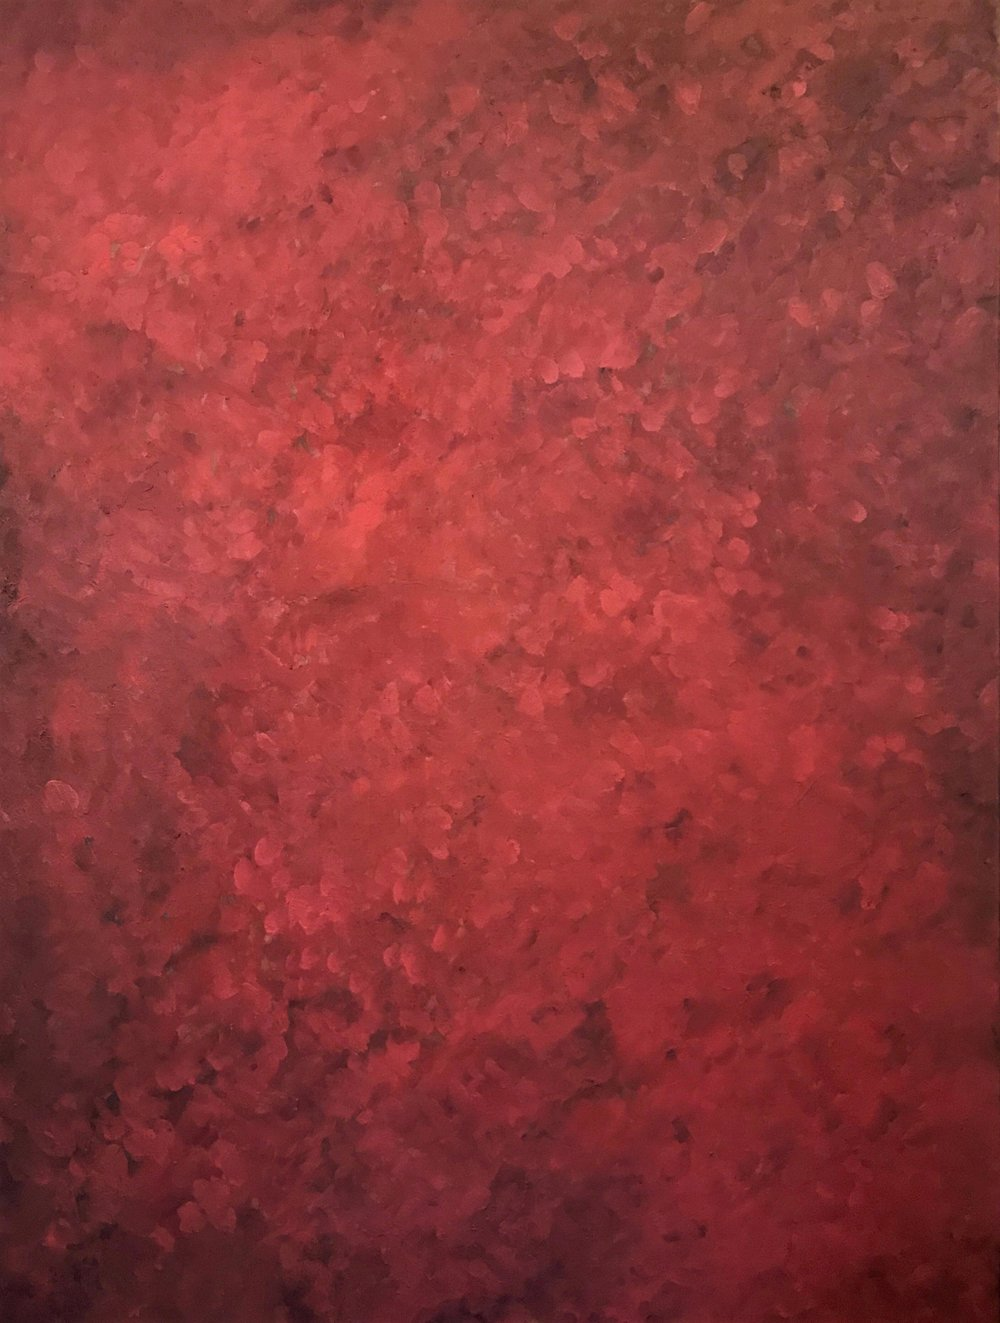 """Red II   2014  48"""" x 36"""" (121.9 x 91.4 cm)  oil on canvas    Price available upon request"""